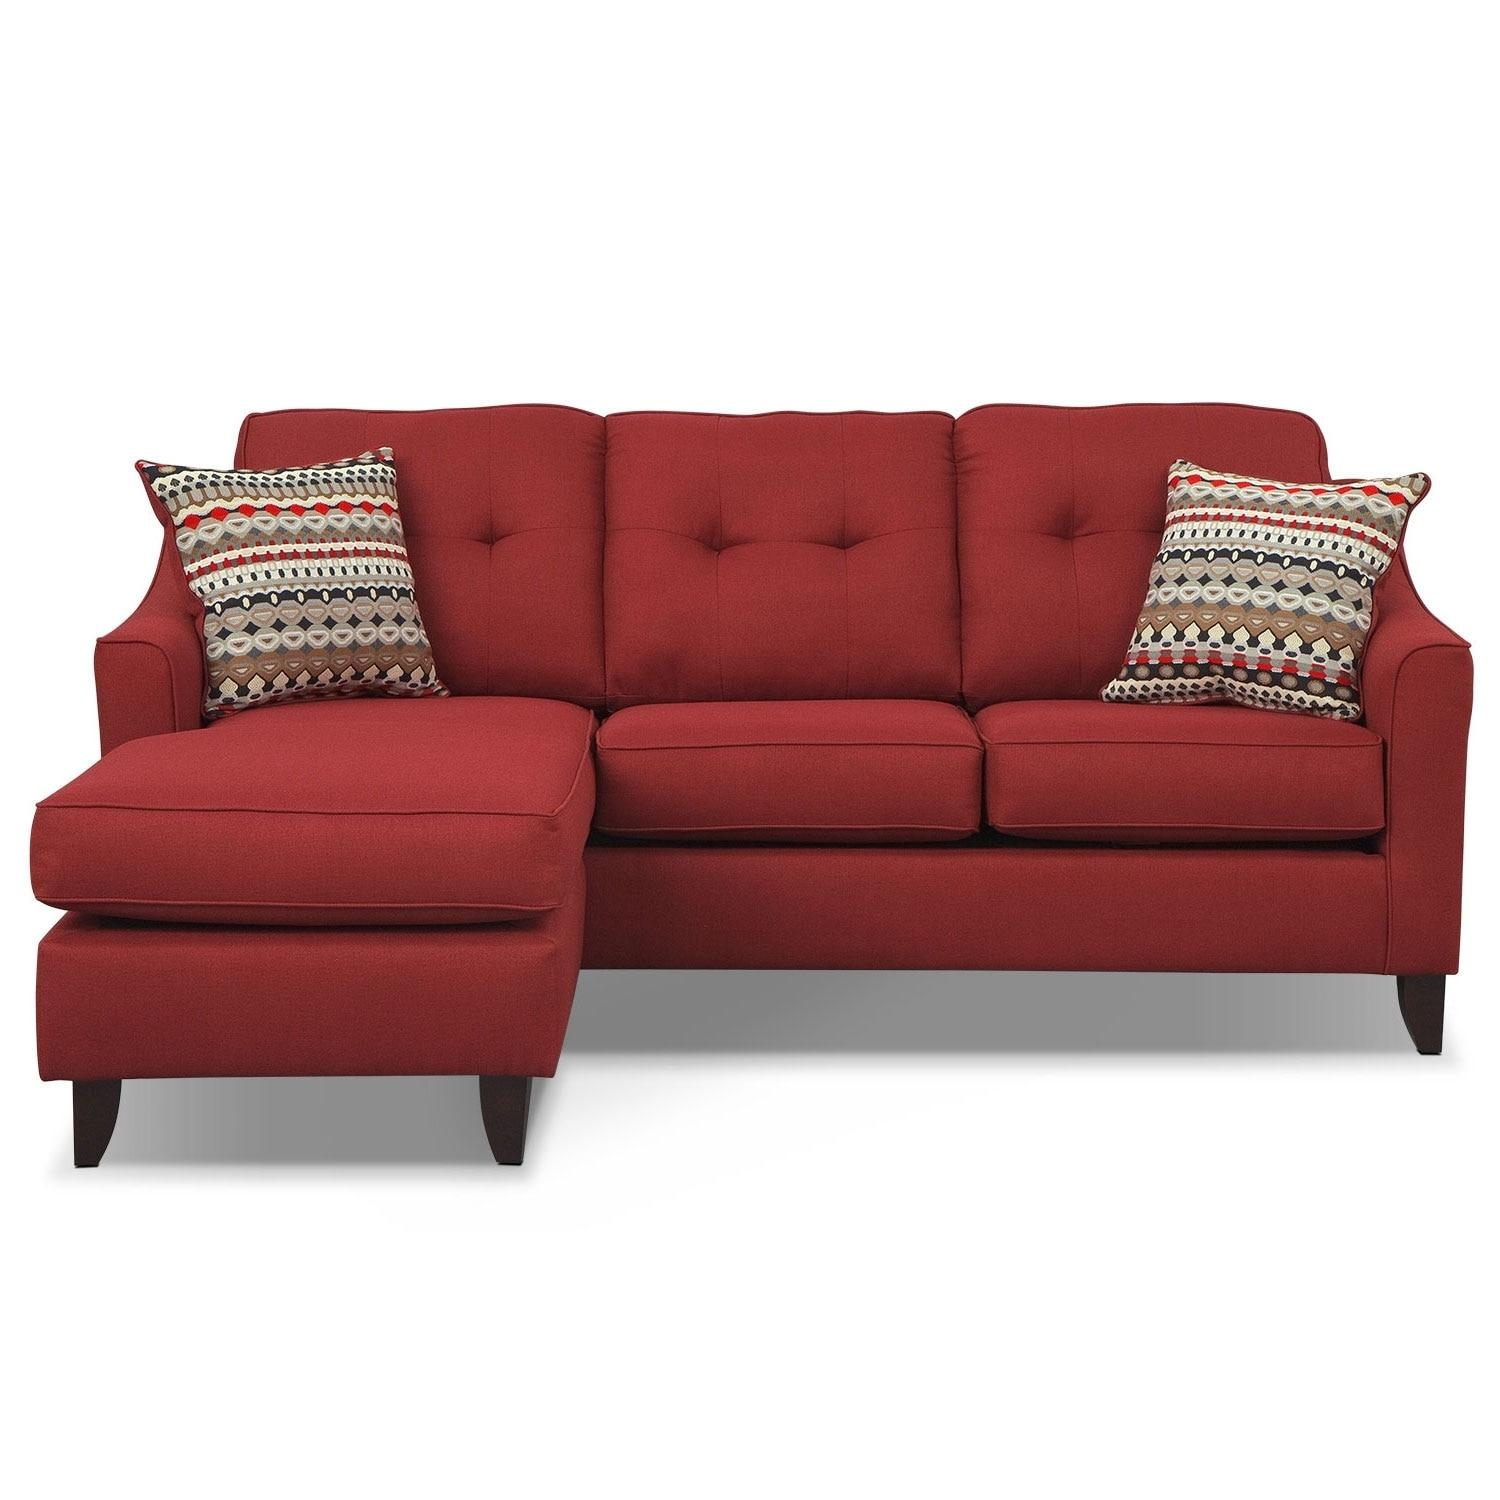 Marco Chaise Sofa – Red | Value City Furniture Within Chaise Sofas (View 15 of 20)